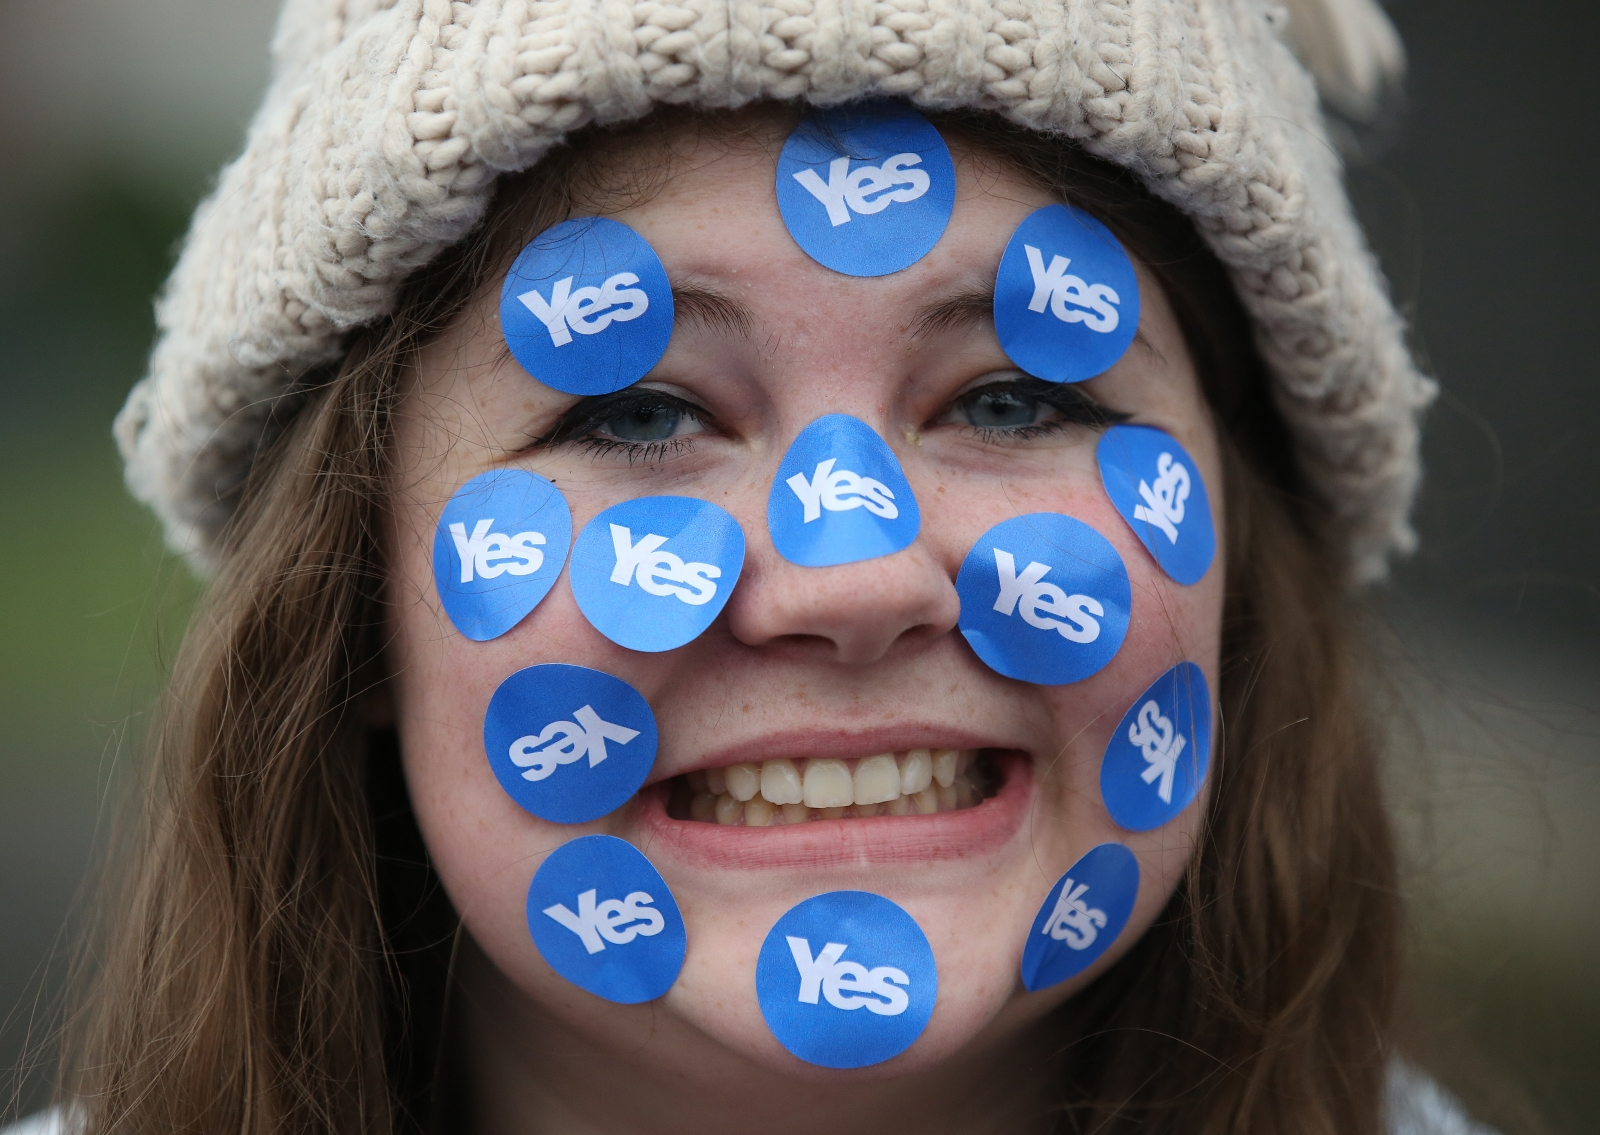 Scottish Enterprise went briefly 'Yes' with referendum tweet